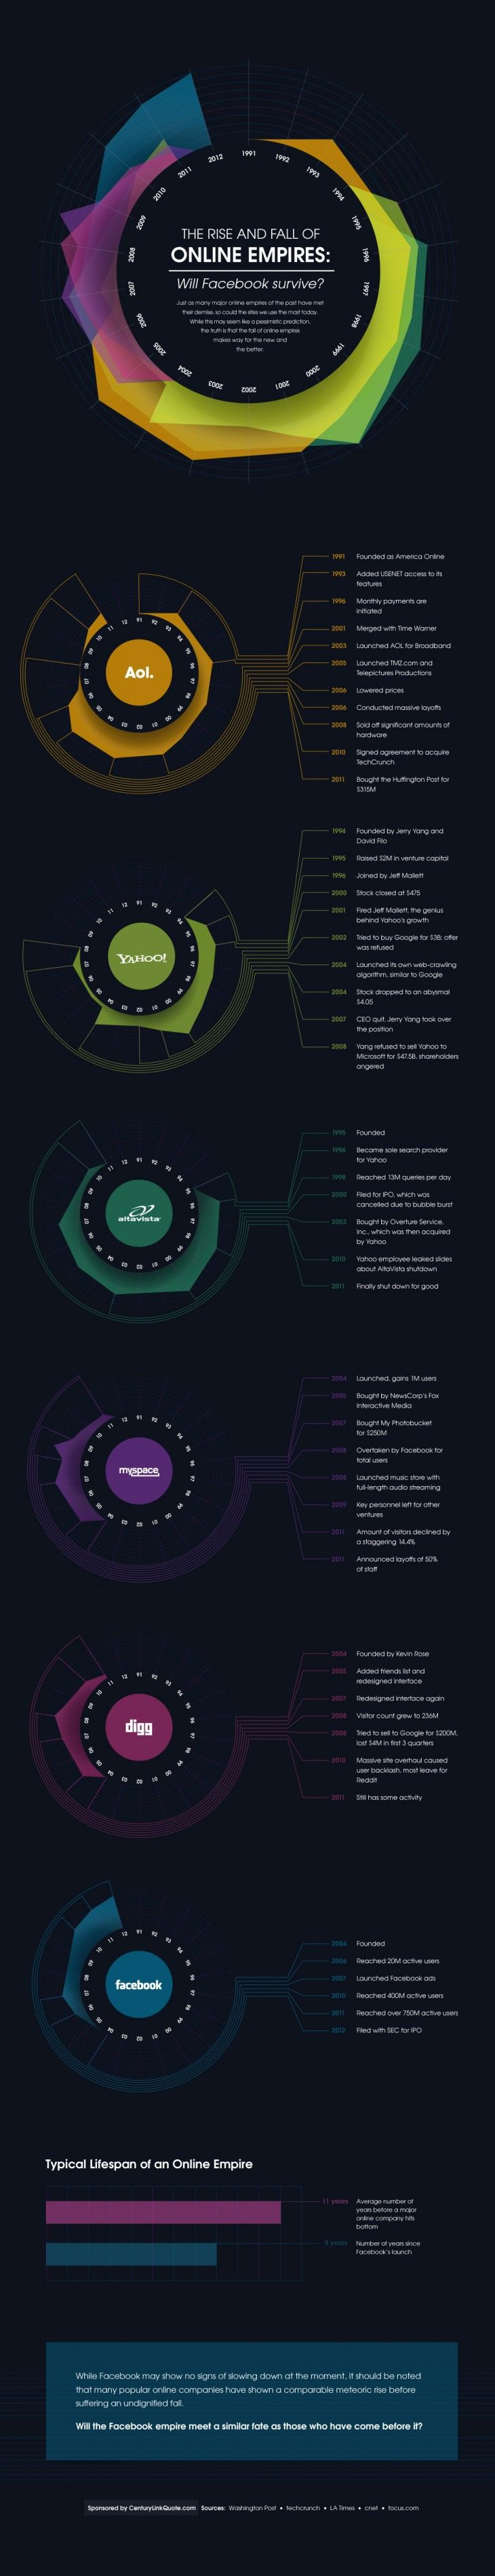 The History Of The Top 6 Social Networks Of All Time - Edudemic